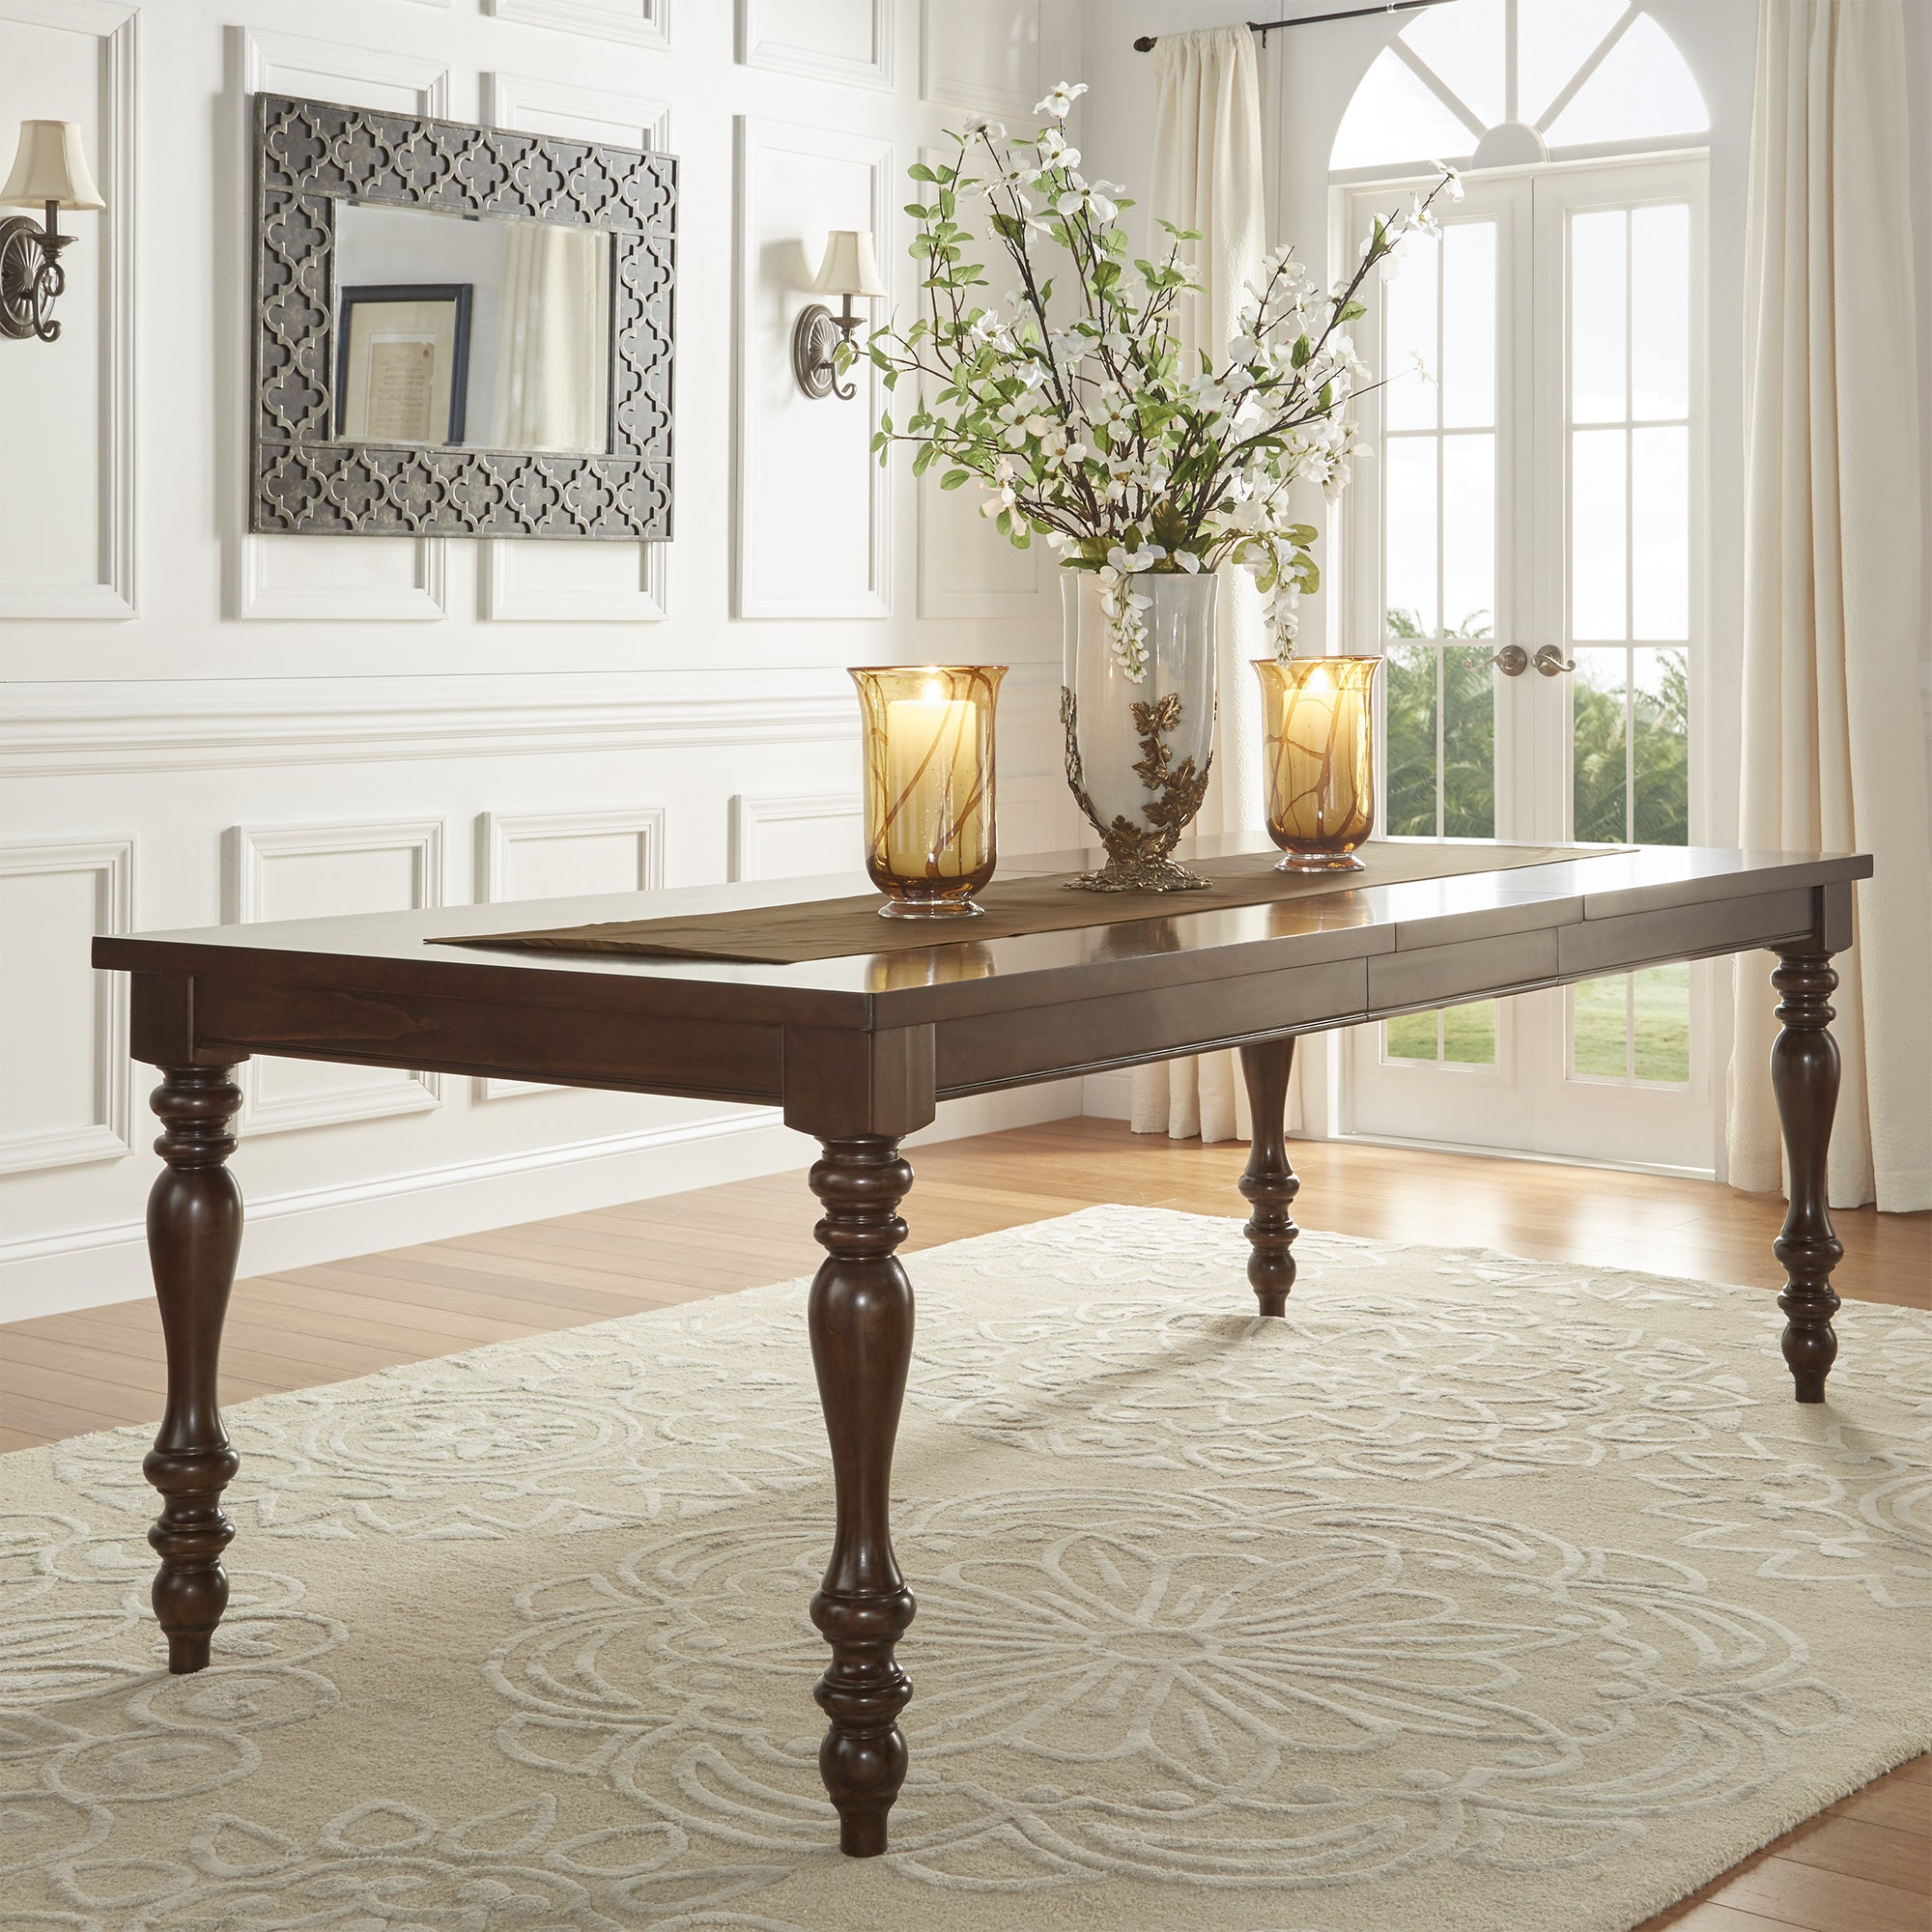 Superb Parisian Rectangular Extending Dining Table By INSPIRE Q Classic   Free  Shipping Today   Overstock   19409519